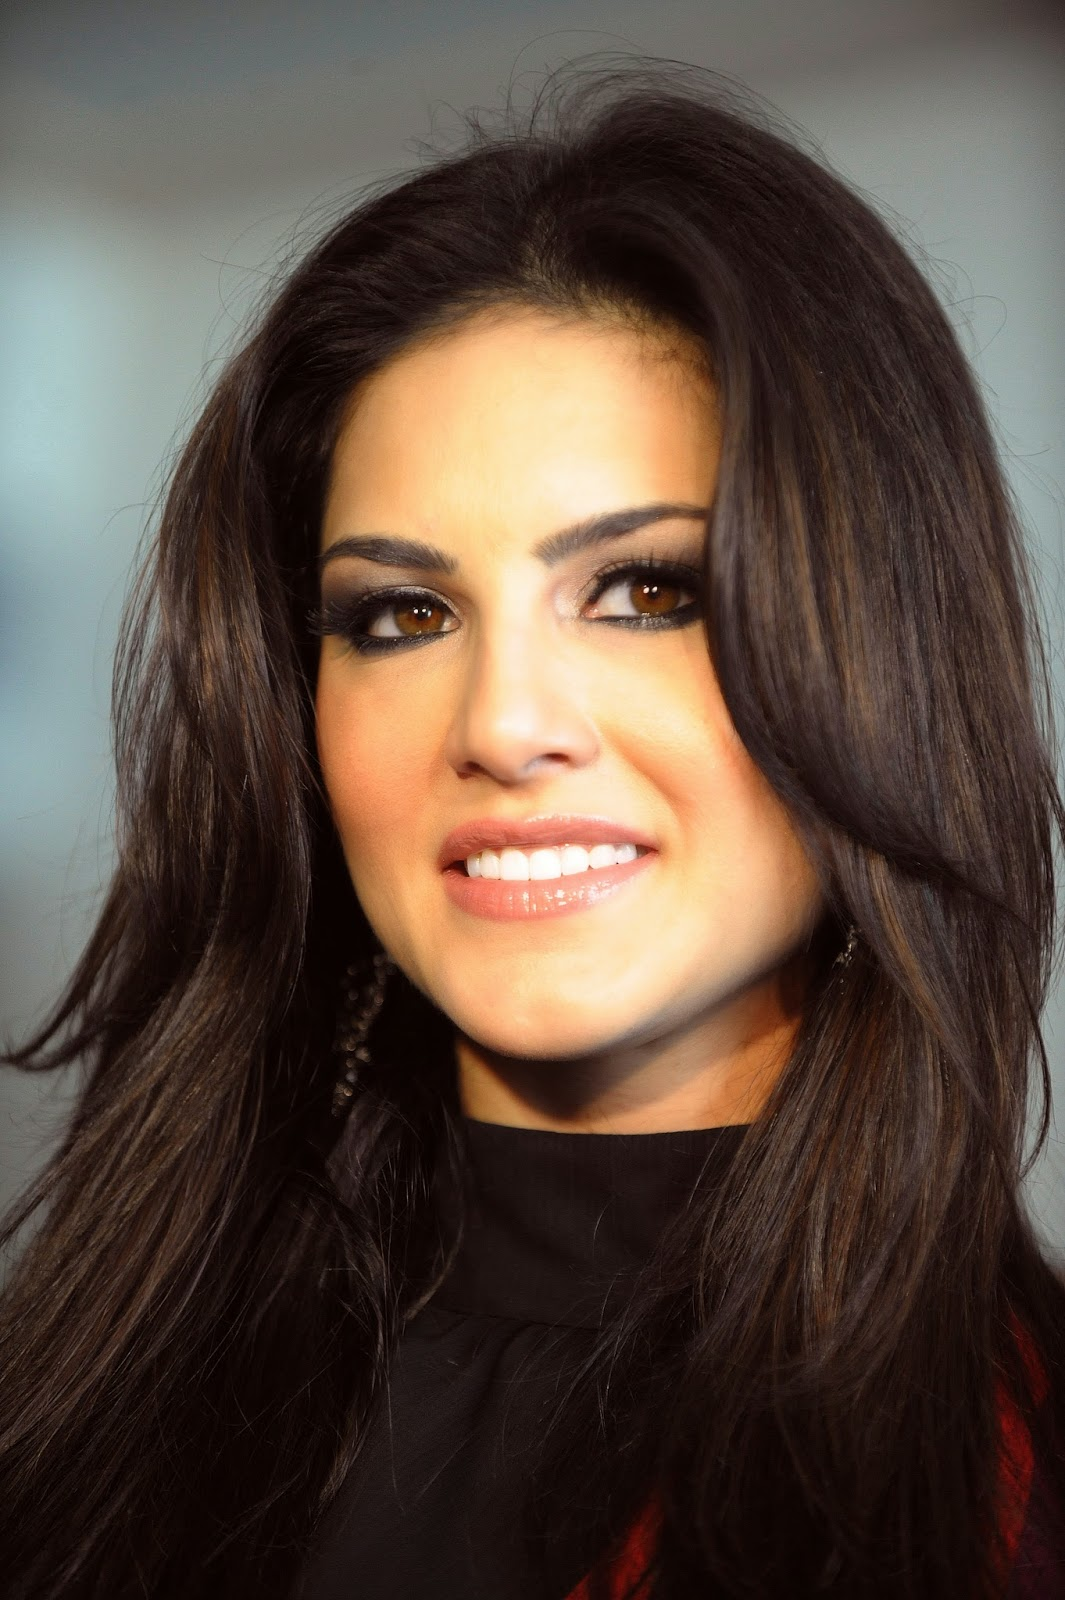 Sunny Leone Hd Photos  Hd Wallpapers Of Sunny Leone - Hd-6460